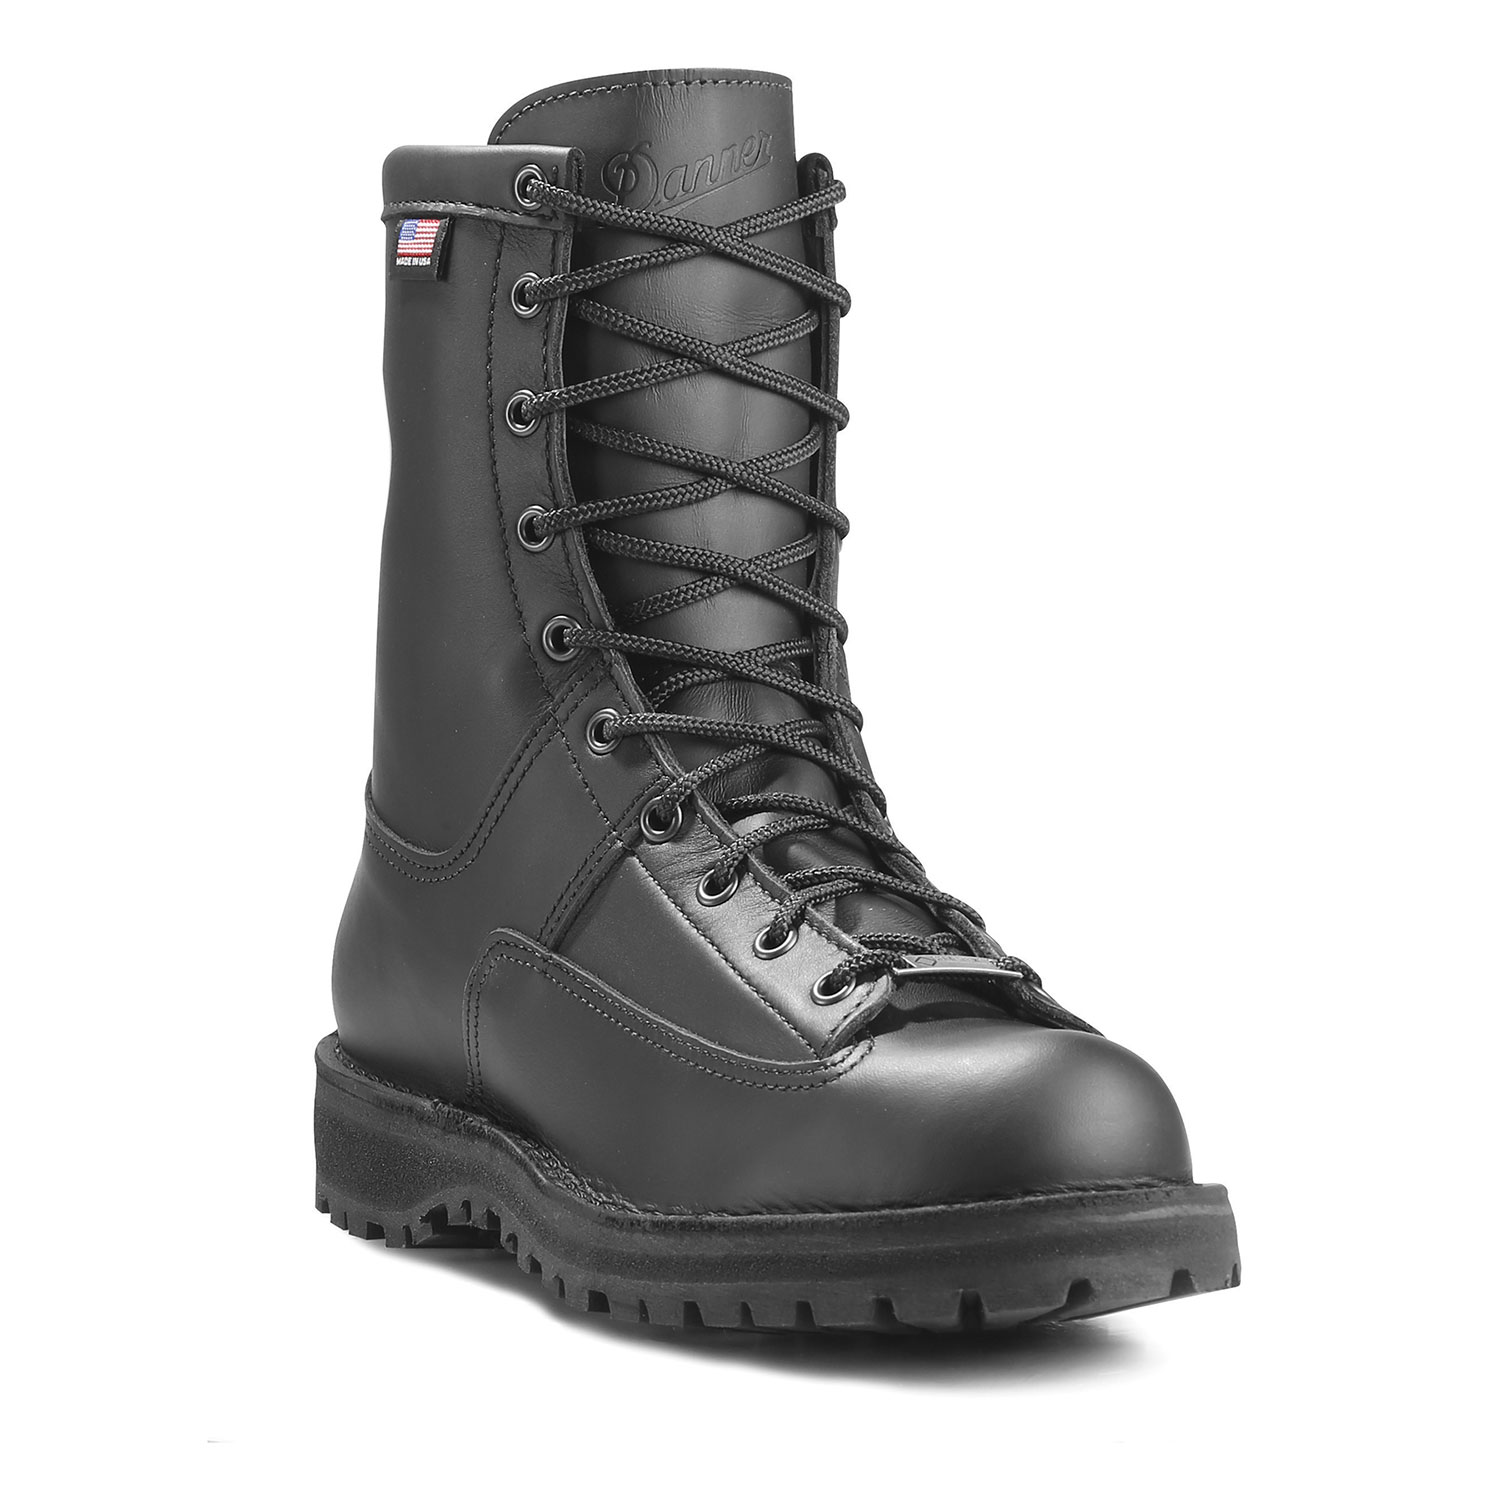 "Danner 8"" Recon Insulated Boot"